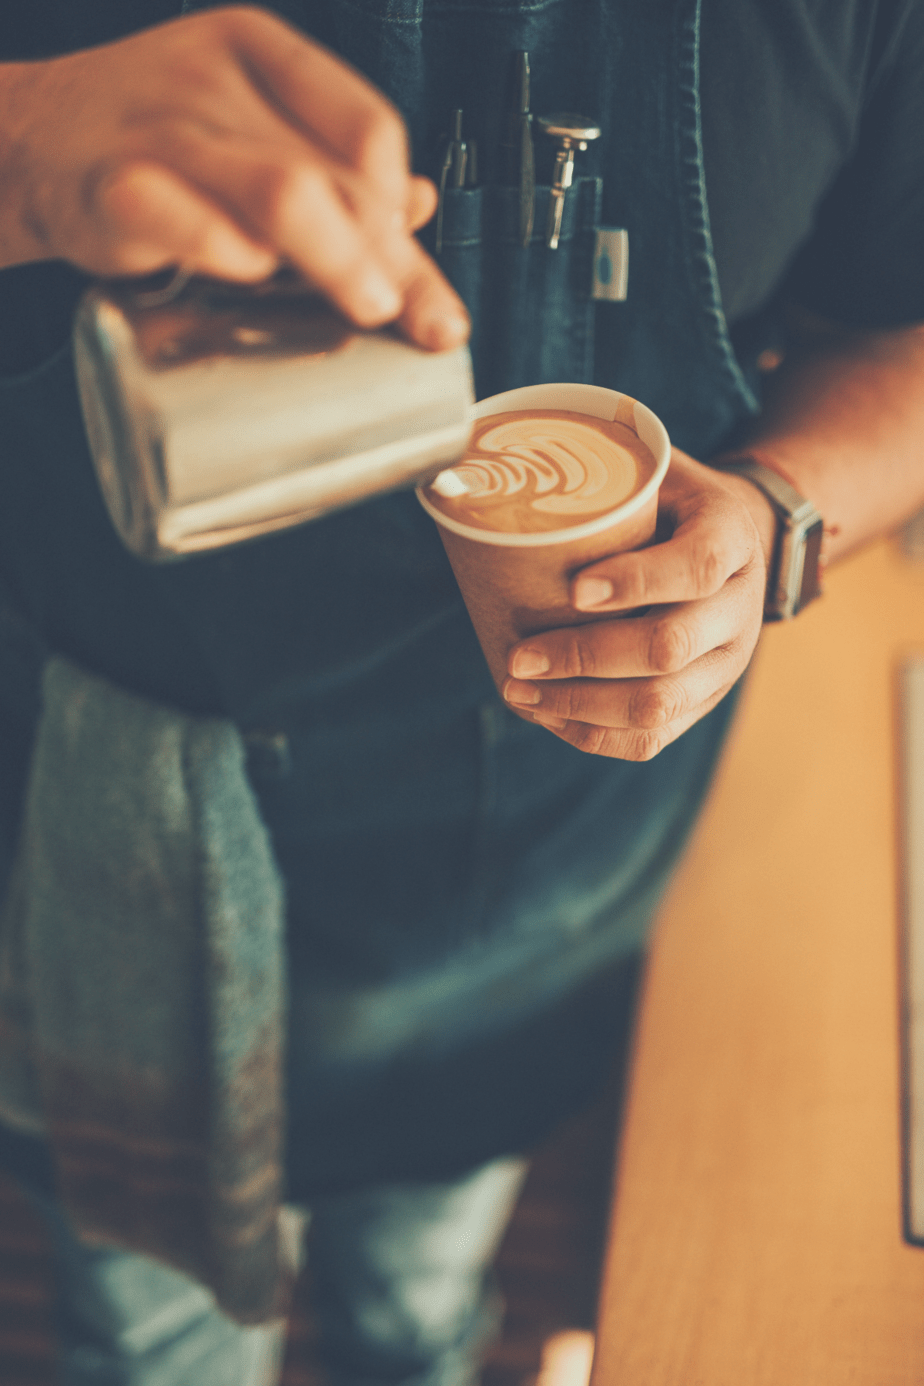 barista pouring a cup of coffee